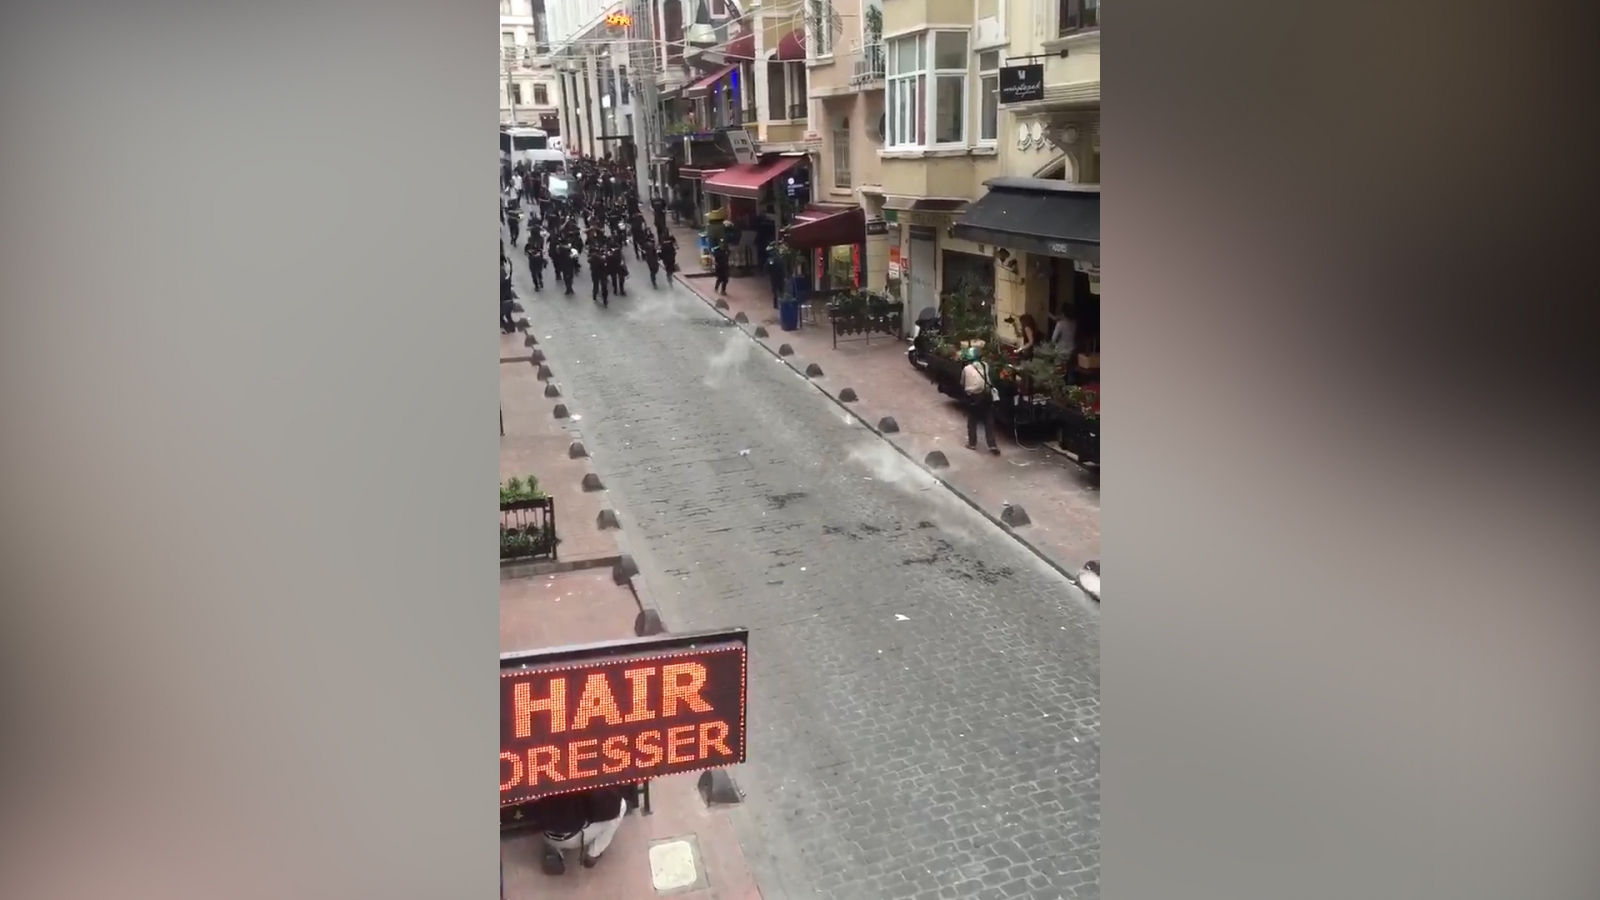 Scandal in Turkey: Transgender Woman Raped and Burned in Istanbul